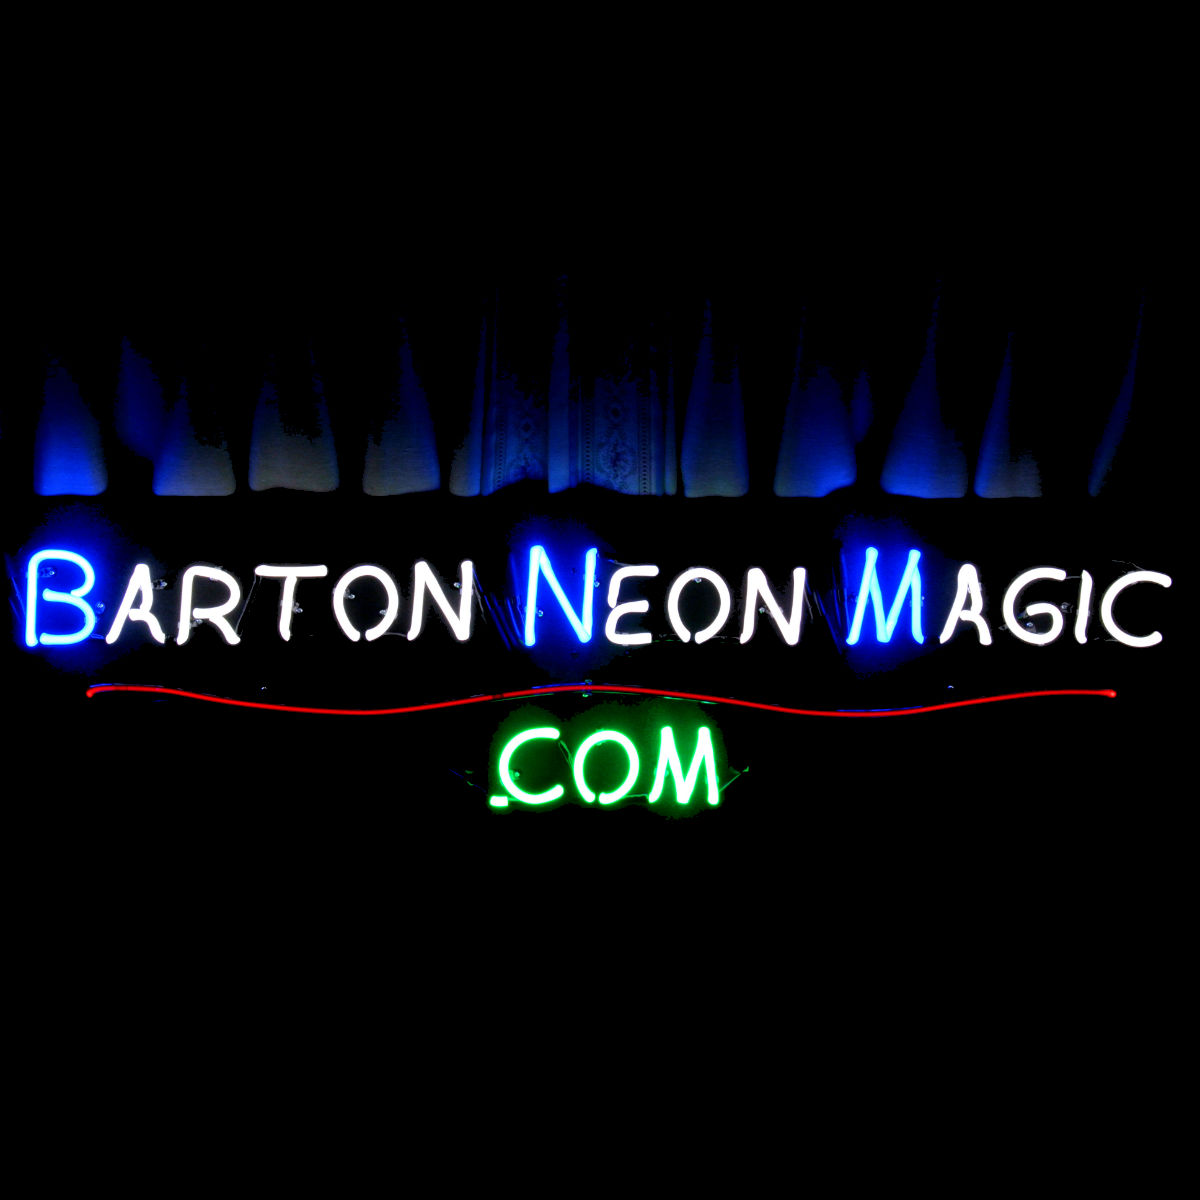 Custom Aviation Neon Logos by John Barton - BartonNeonMagic.com